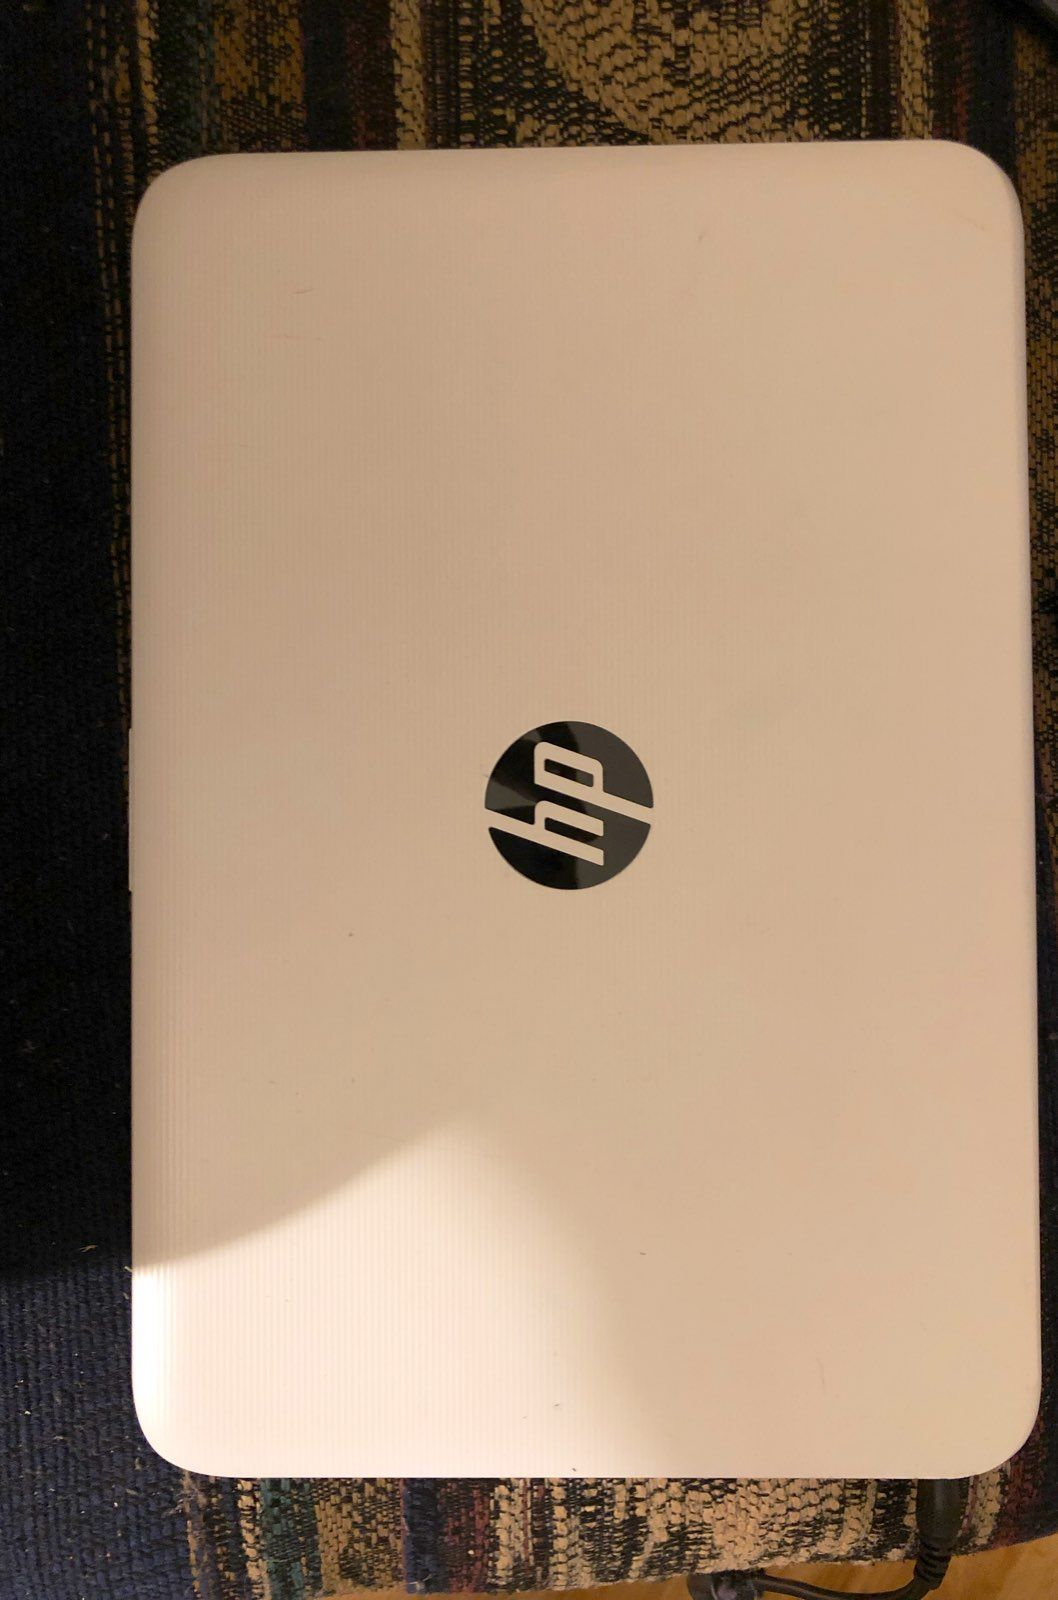 Hp 11 6 Stream Laptop With Windows 10 In S Mode With Charger Working Perfectly Ready To Ship Comes With Charger First Come Laptop Hp Laptop When I See You